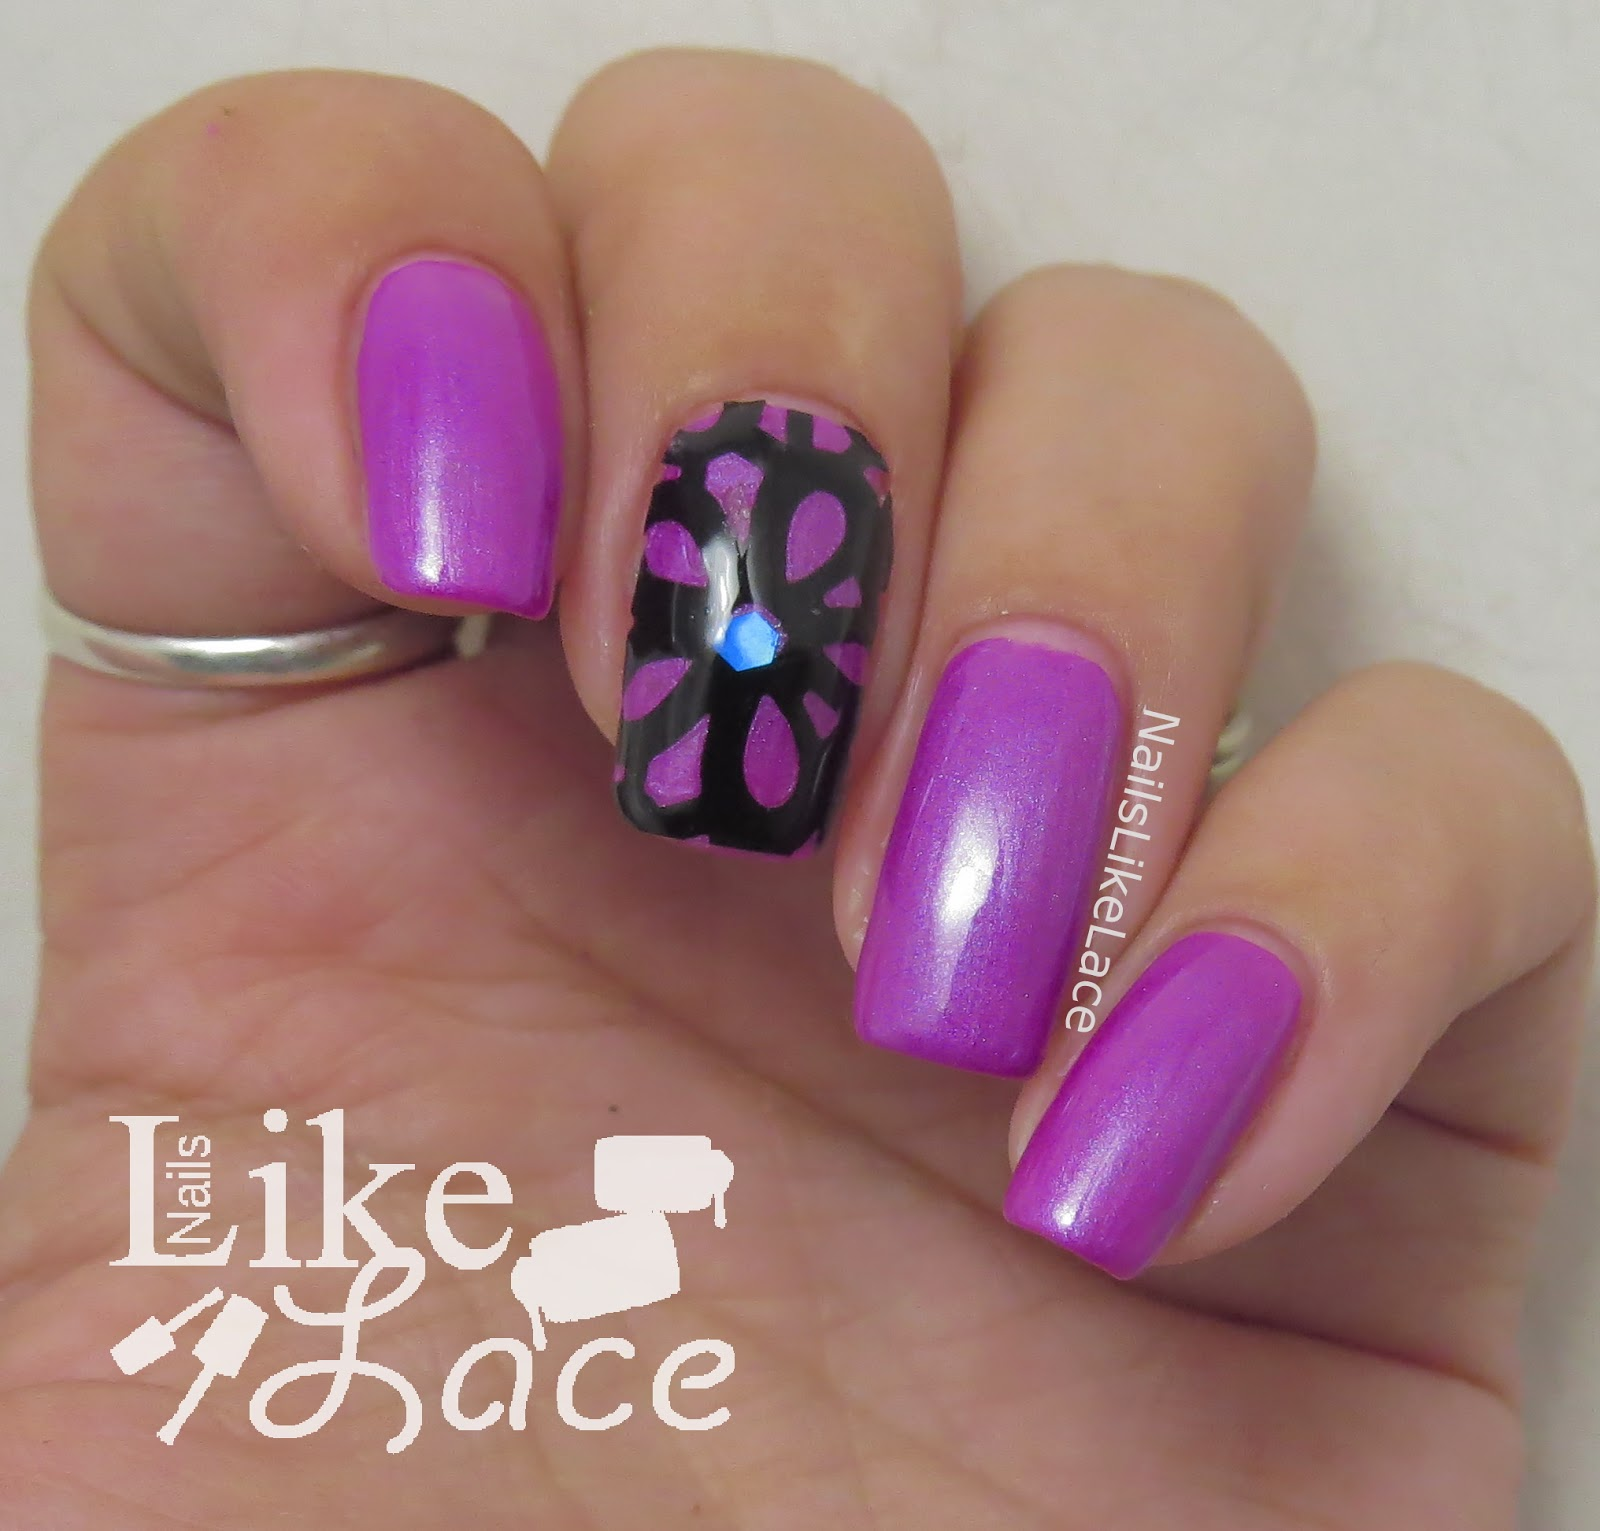 NailsLikeLace: $2 Manicure: Floral Tape on Purple